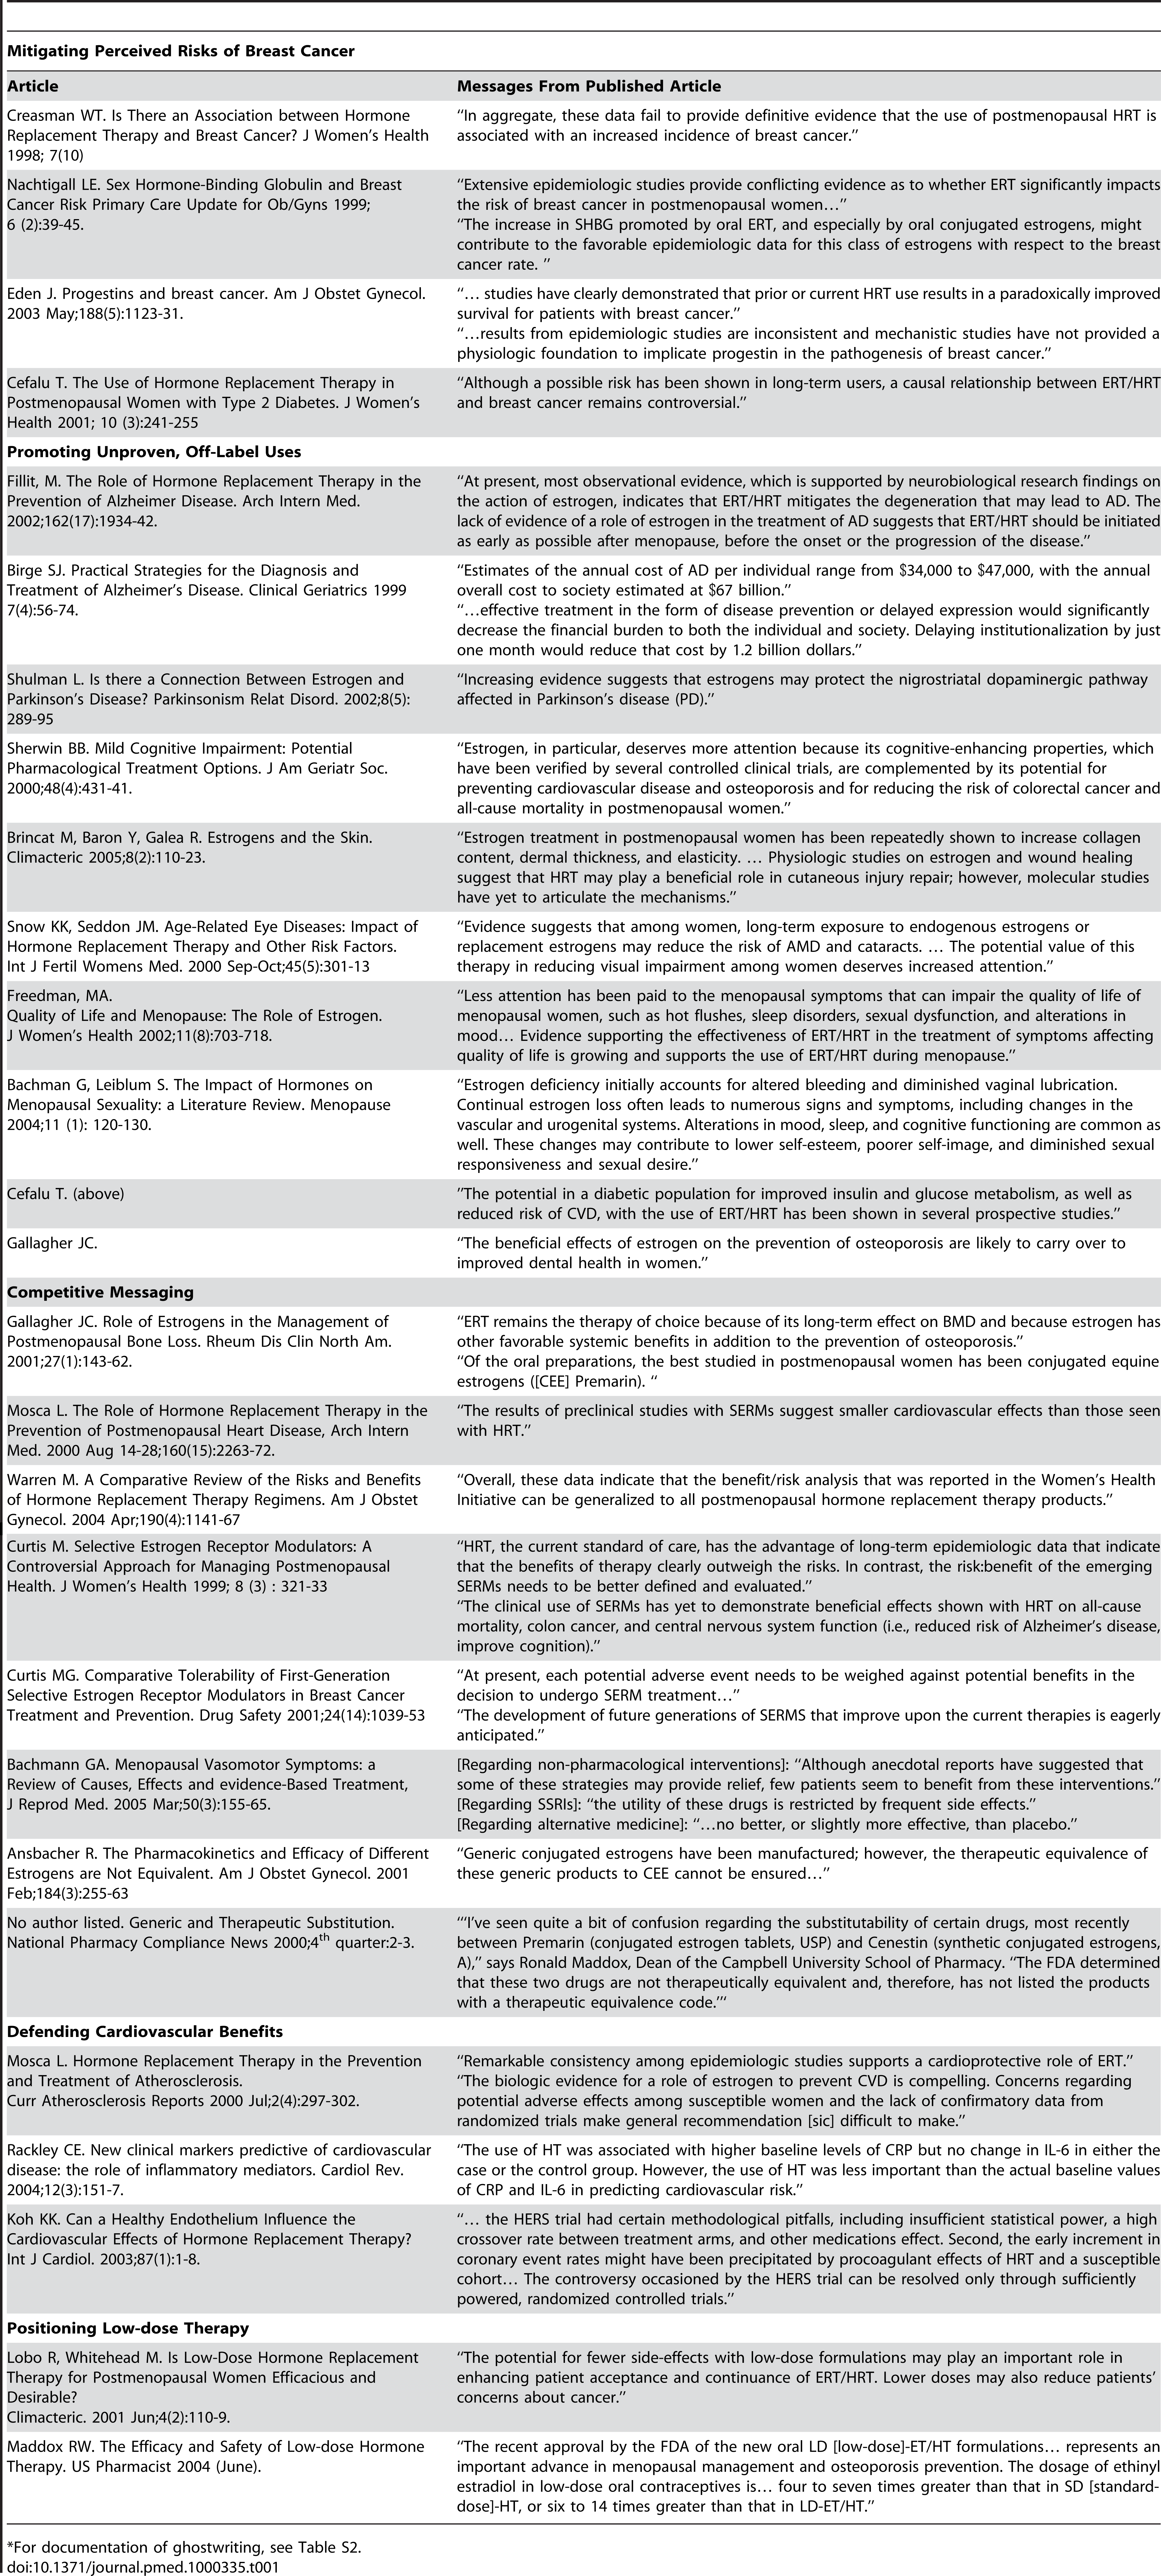 Examples of ghostwritten reviews and commentaries<em class=&quot;ref&quot;>*</em>.